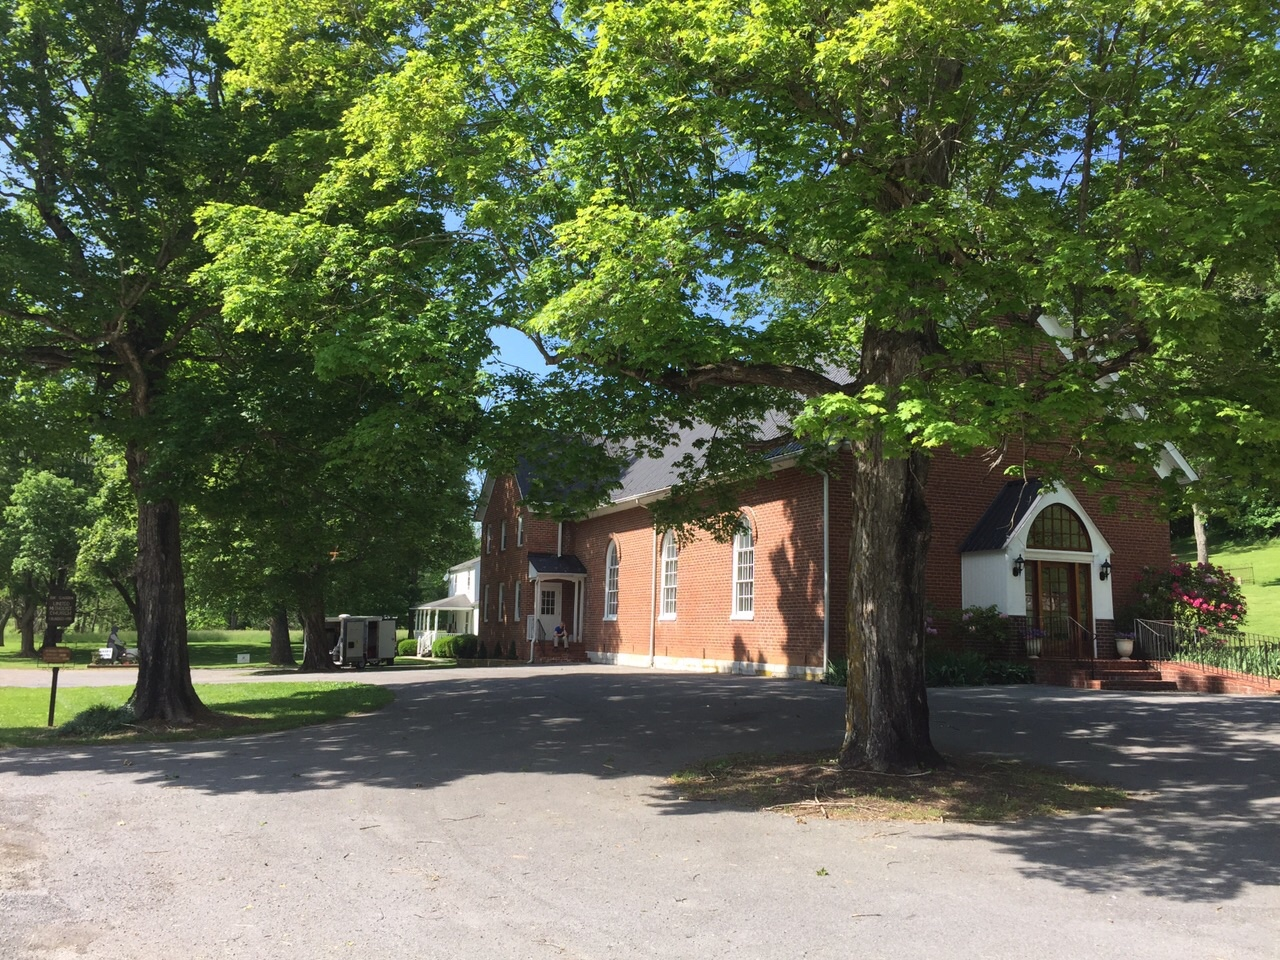 I think it is a lovely and generous service that the Church Community provides the bikers. Thus far we have stayed in four churches and three of them have been Methodist. It is very peaceful green a tree pocked valley. I could have gone another ten or twenty miles easily, but it was nice to have such a short ride after the bike troubles and the rest day.